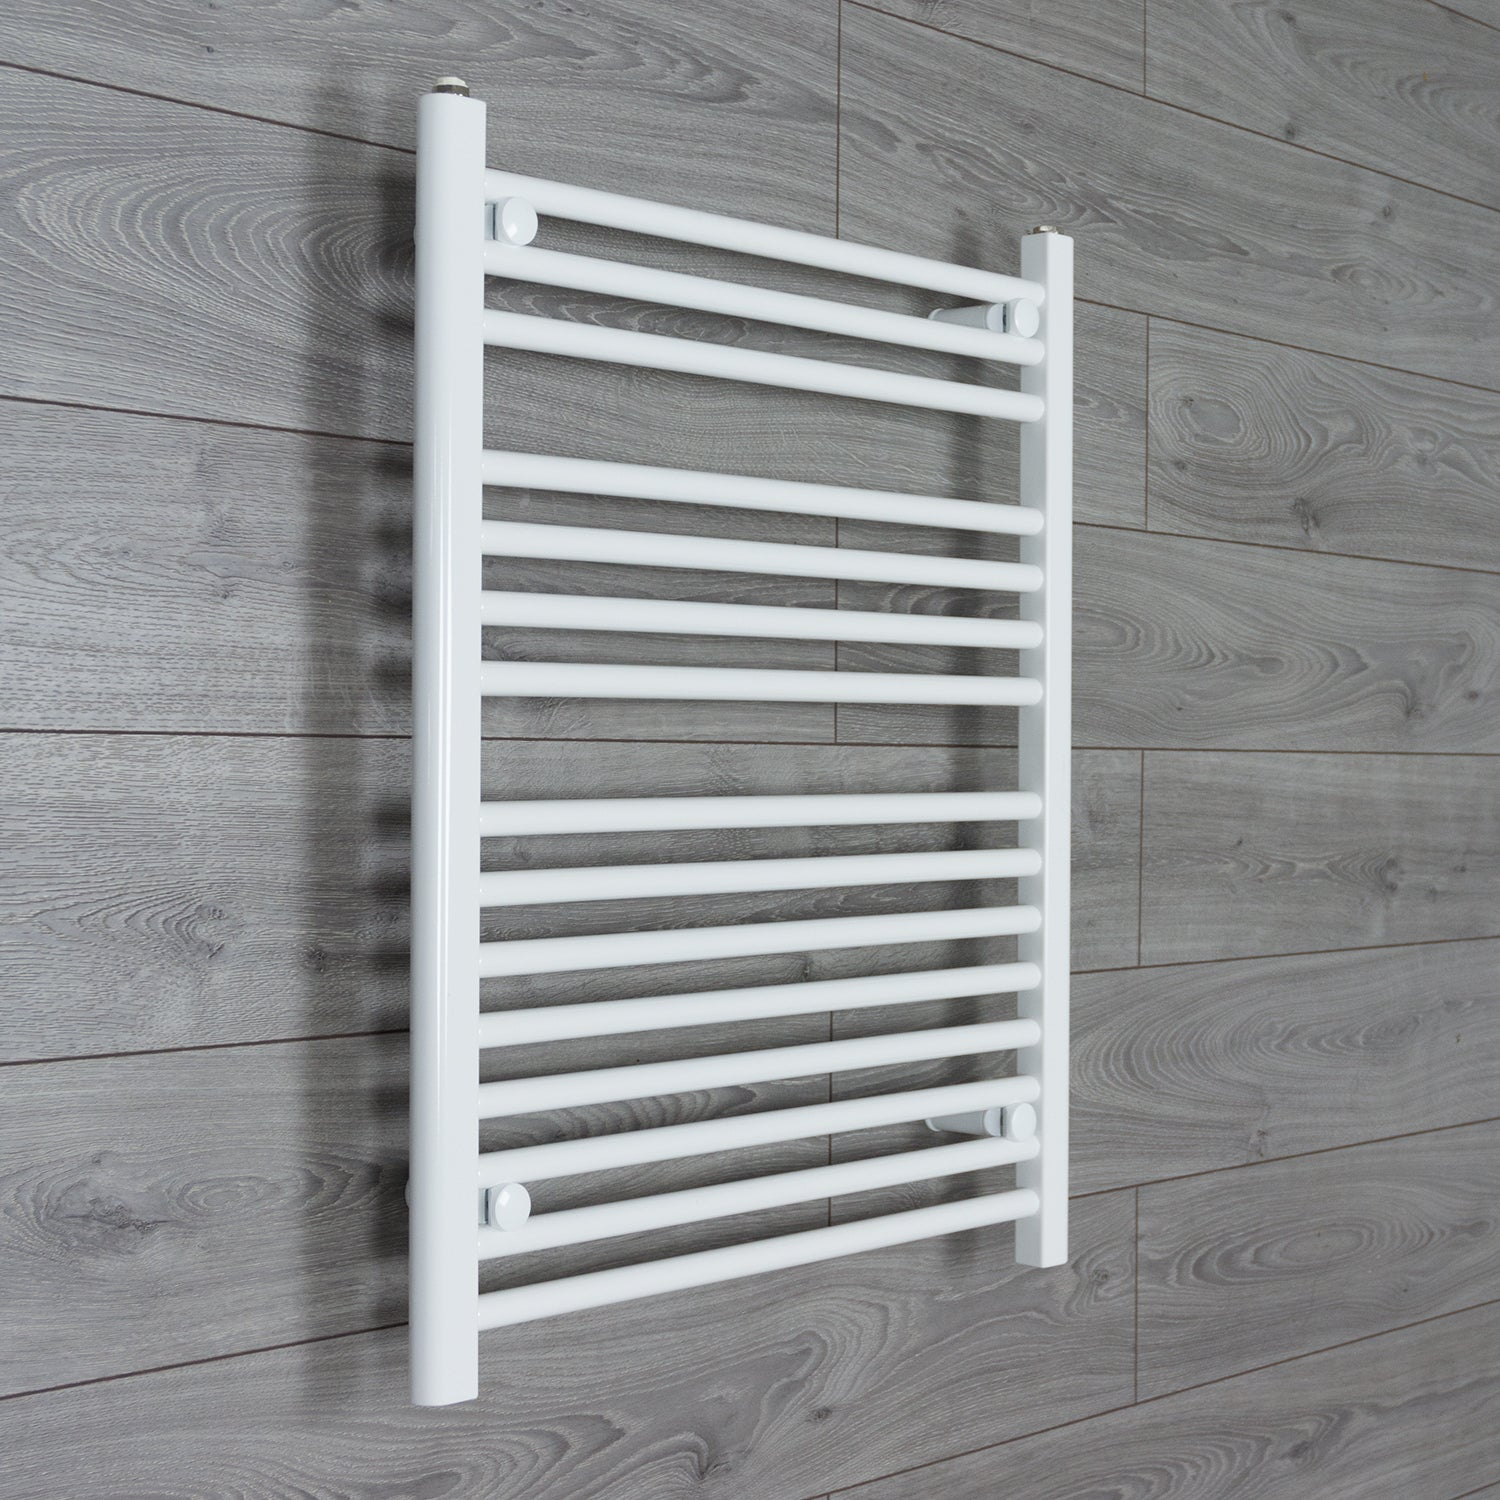 700mm Wide 800mm High Flat White Heated Towel Rail Radiator HTR,Towel Rail Only